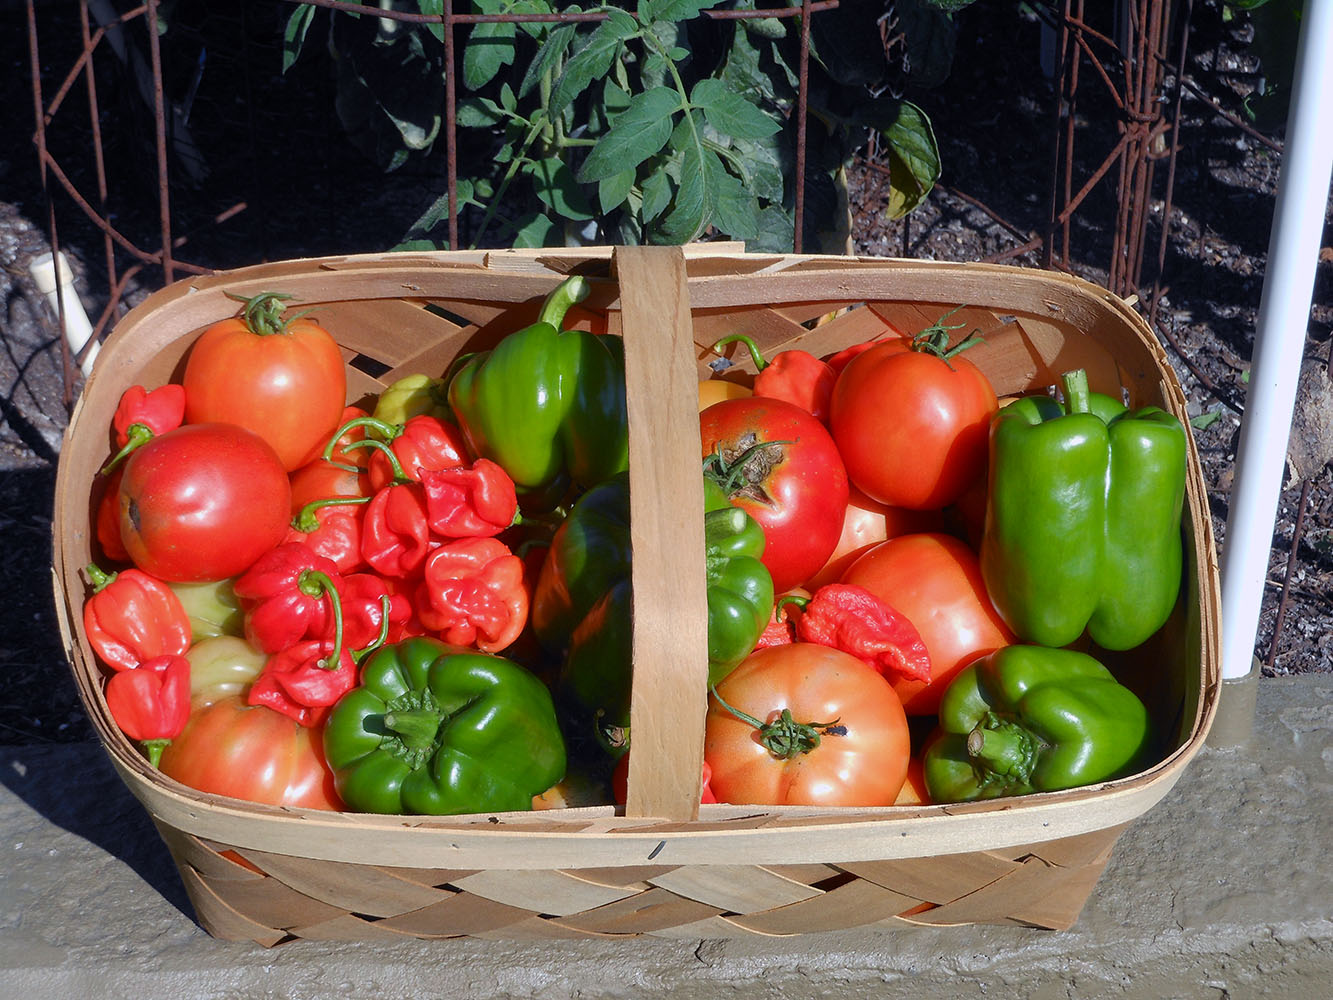 Basket of Peppers and Tomatoes 01